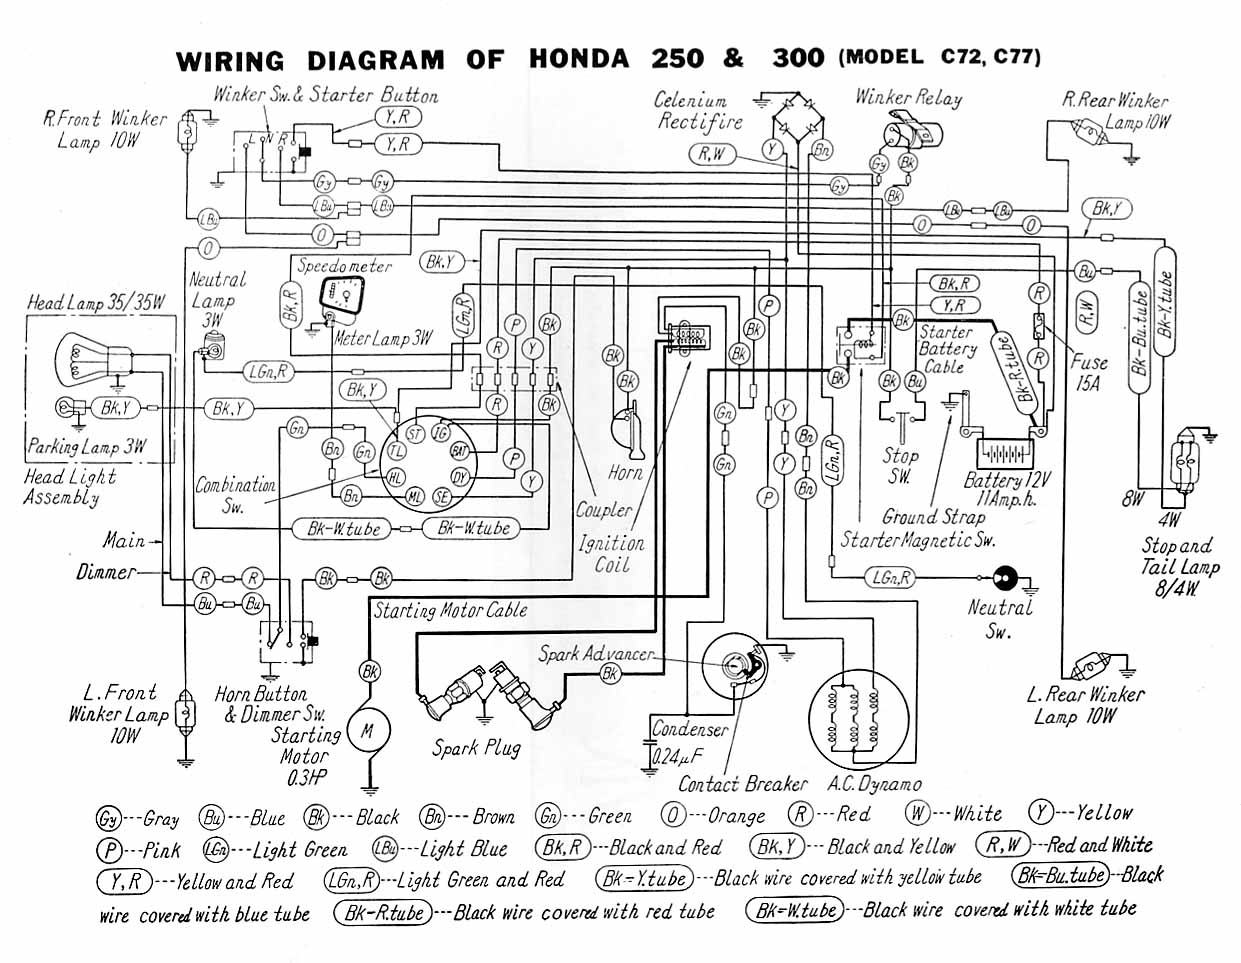 hight resolution of  honda elite sa50 wiring diagram ideas c77 jpg